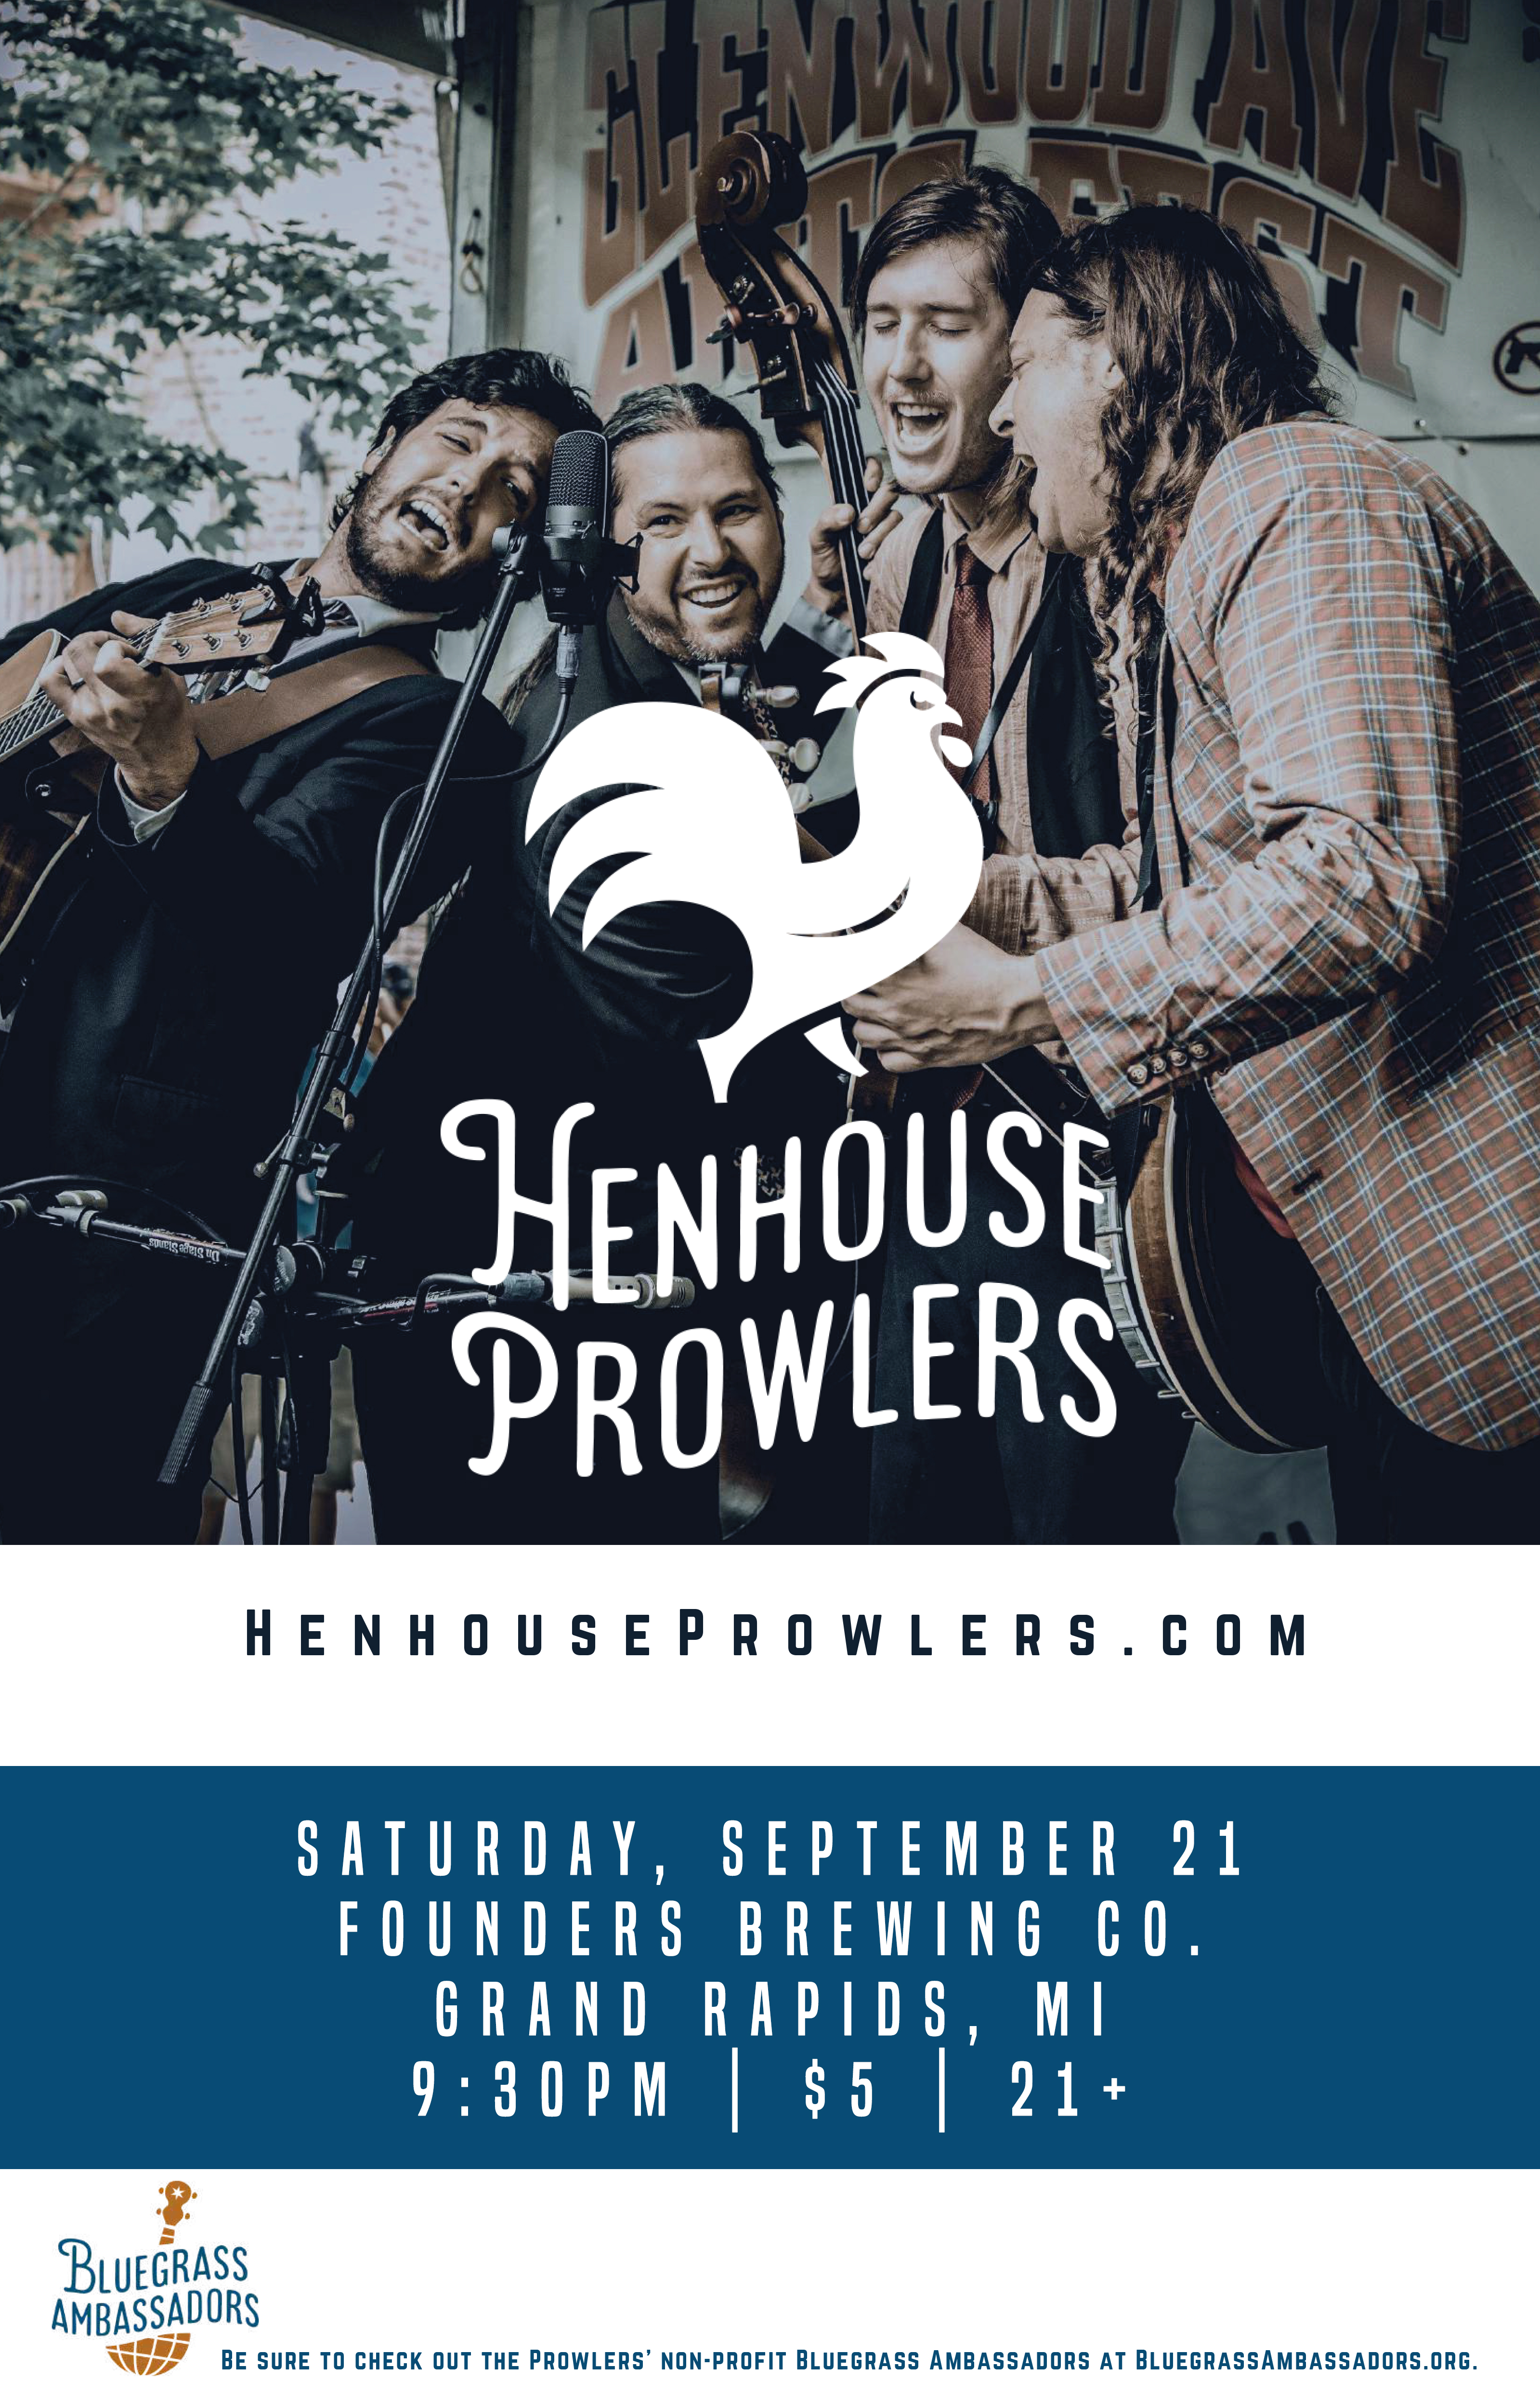 Henhouse Prowlers event poster